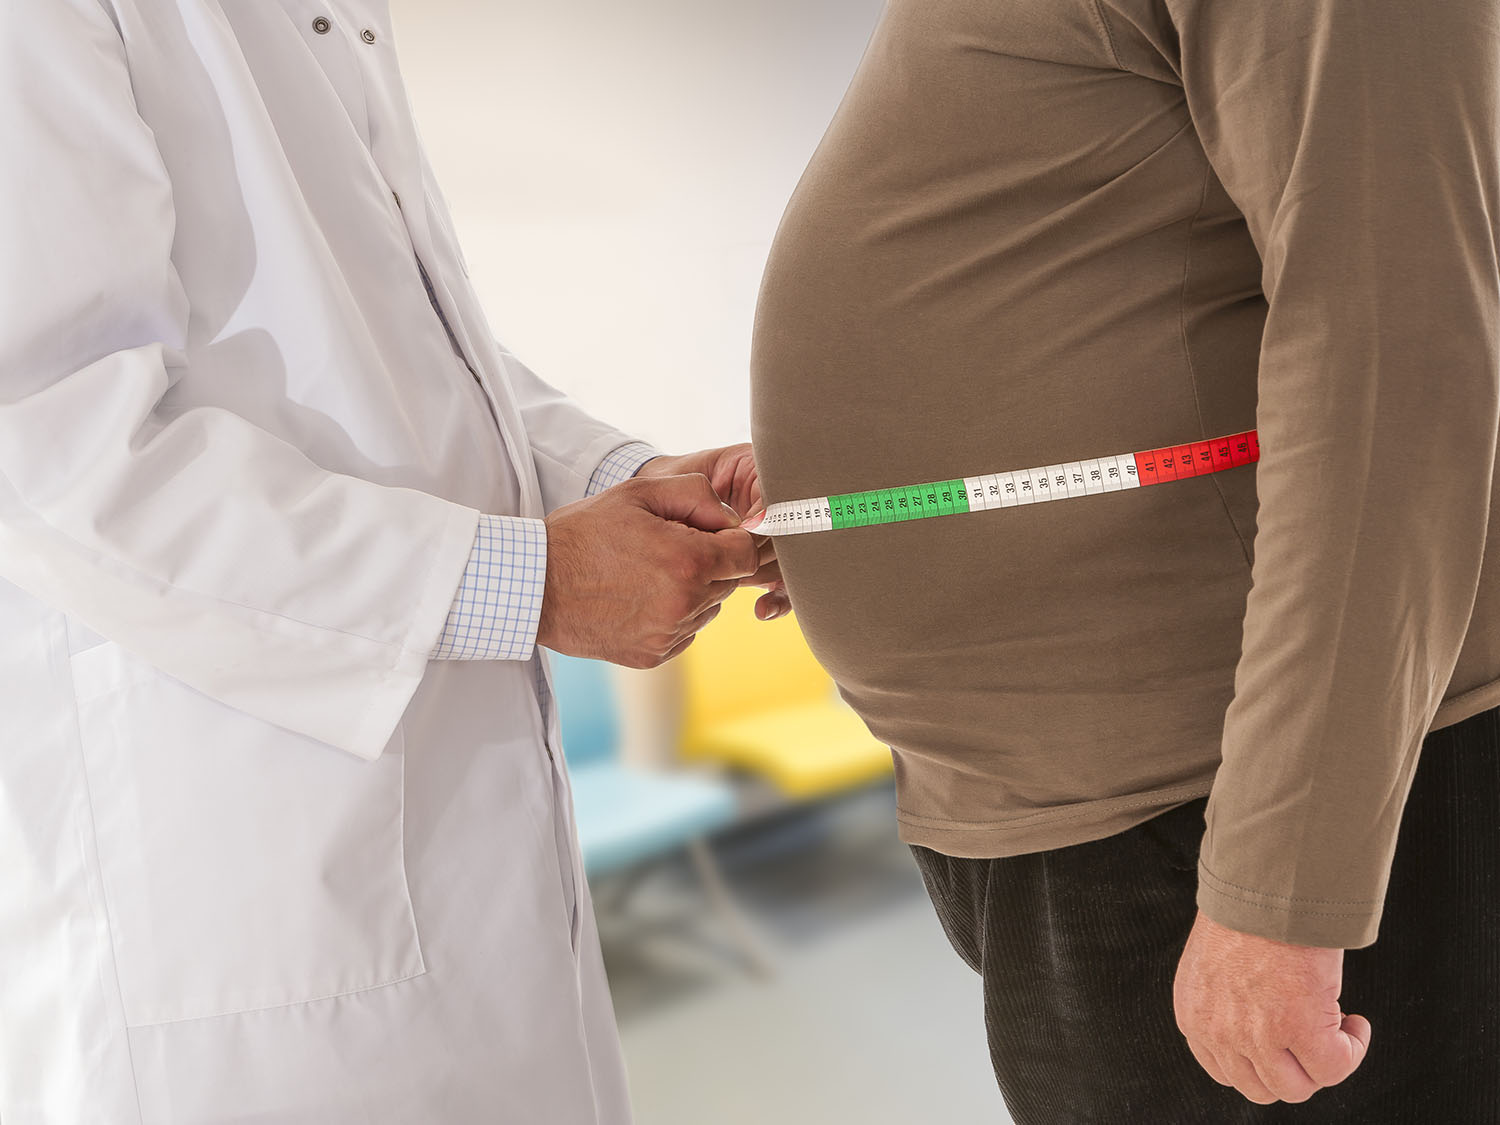 Surgery for the Morbidly Obese:  What to Know & How to Address Weight Loss Before Surgery